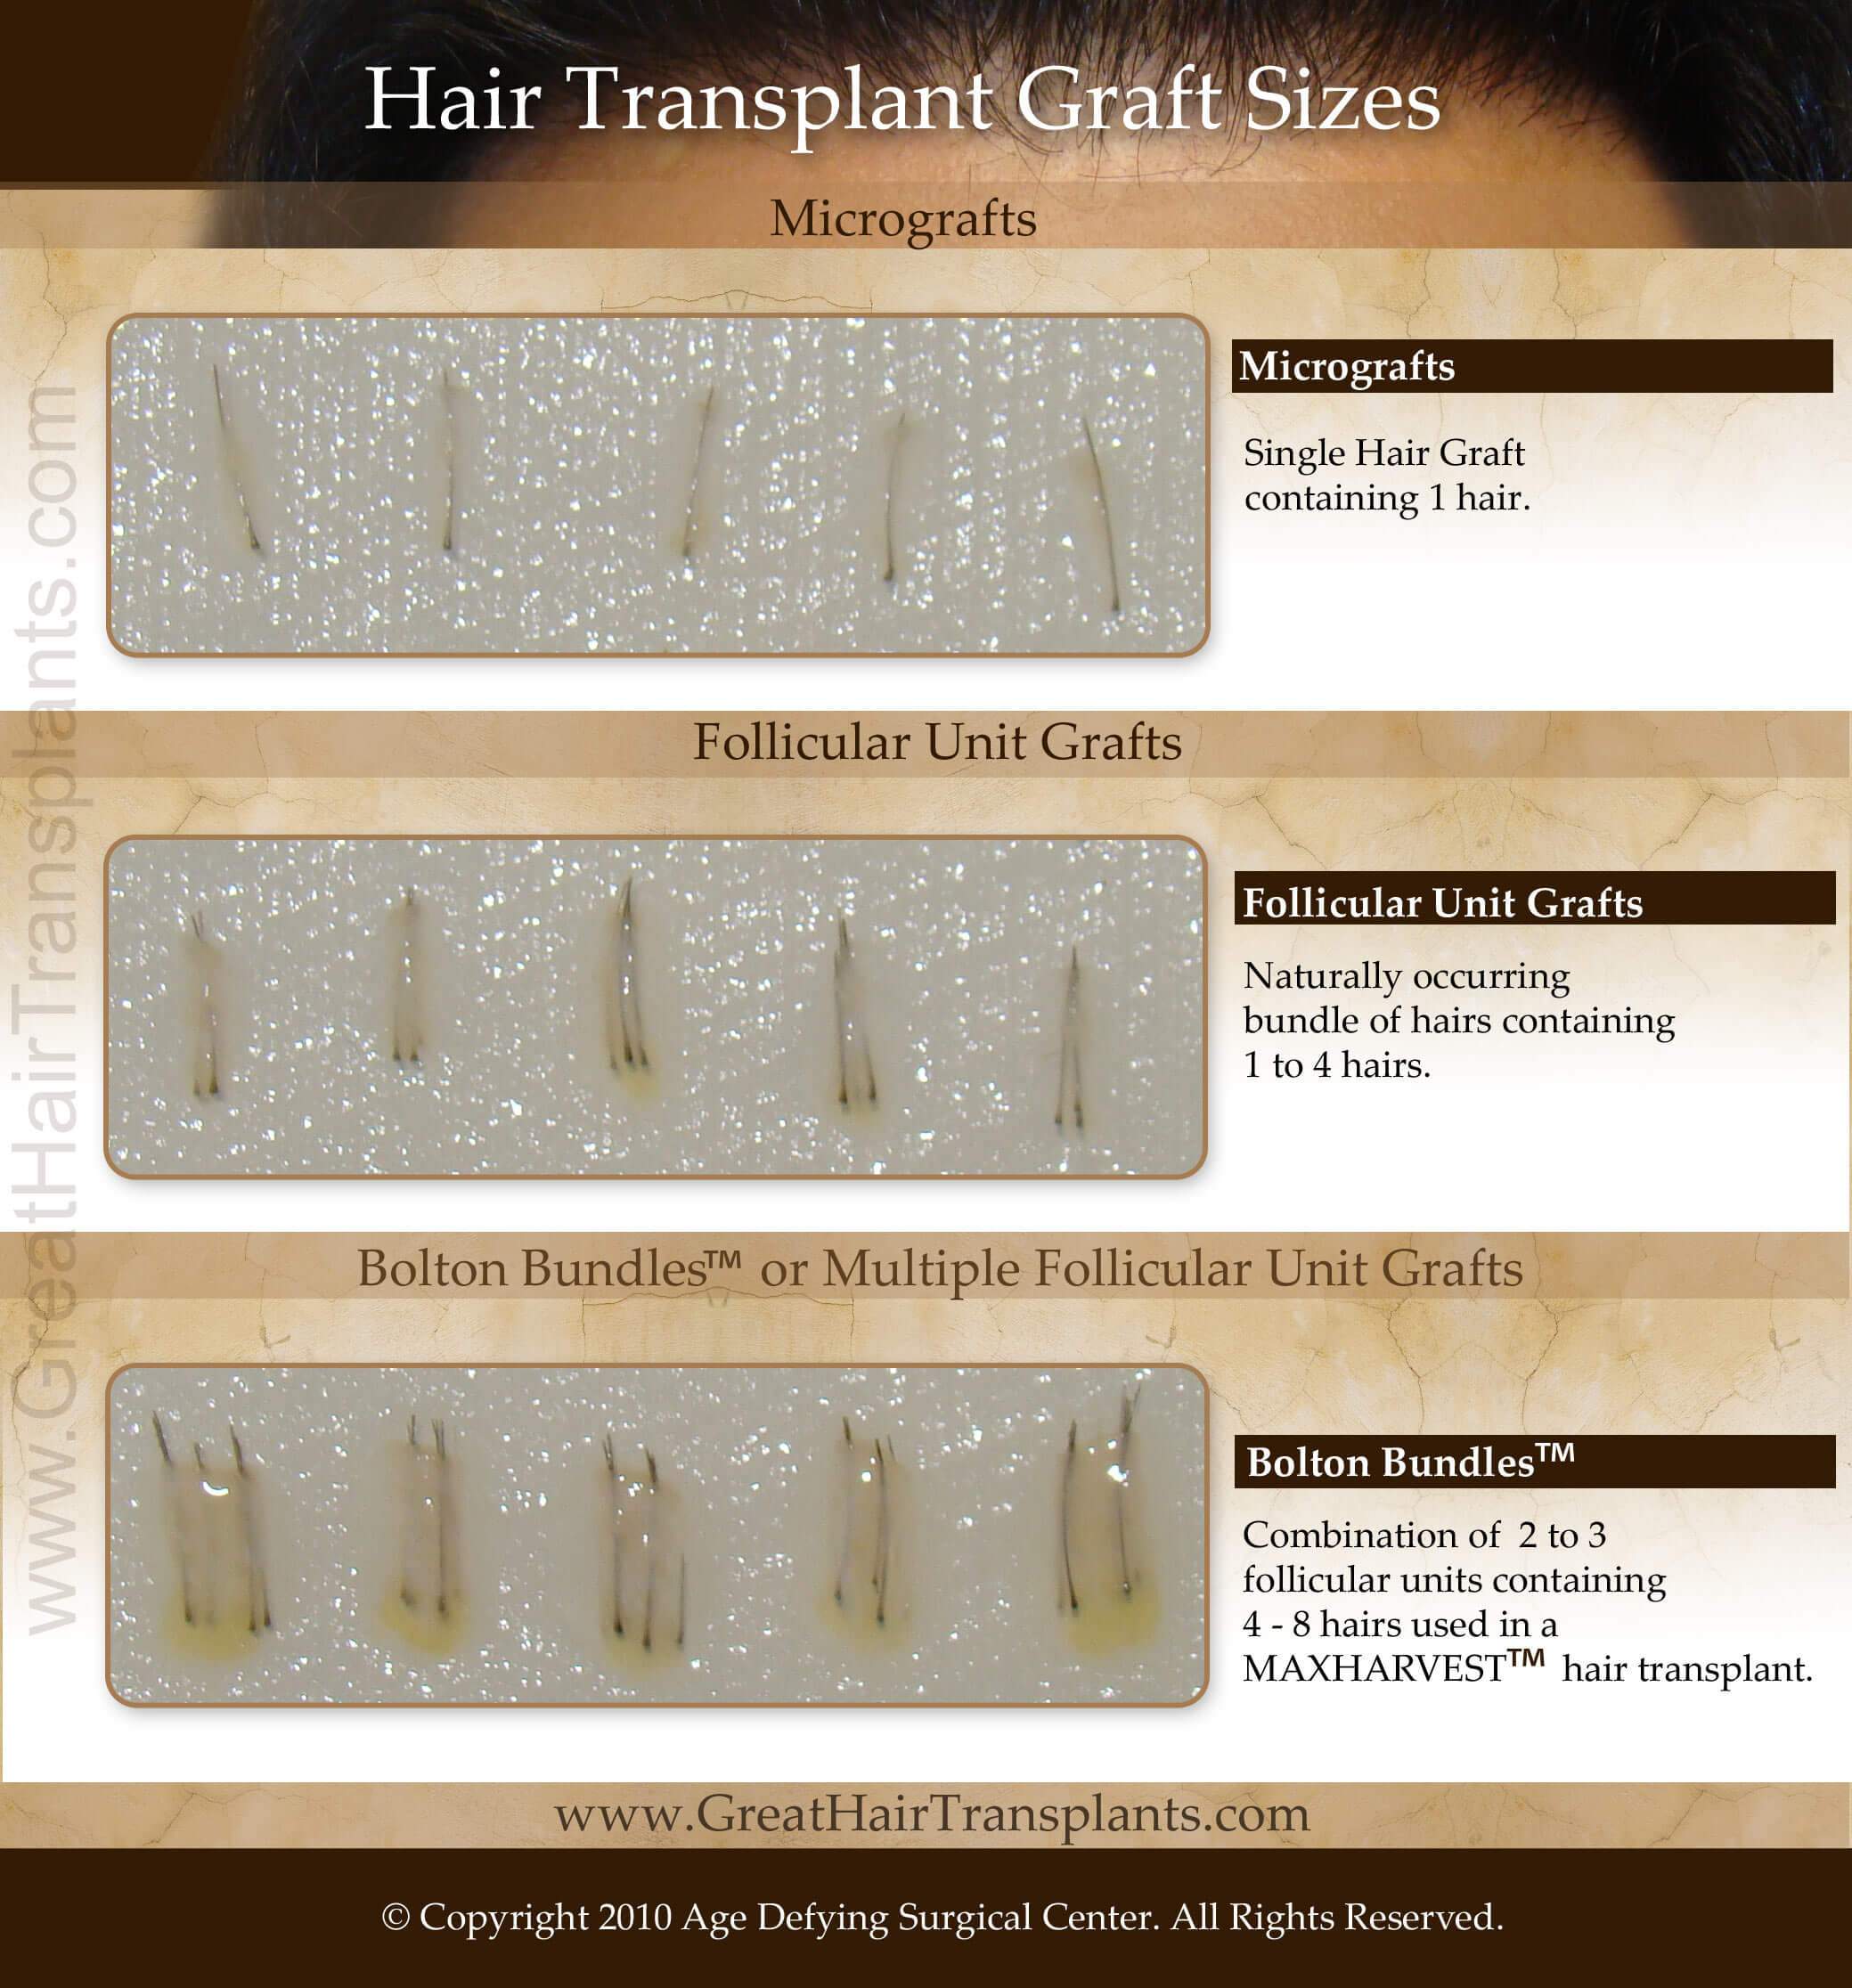 hair graft sizes